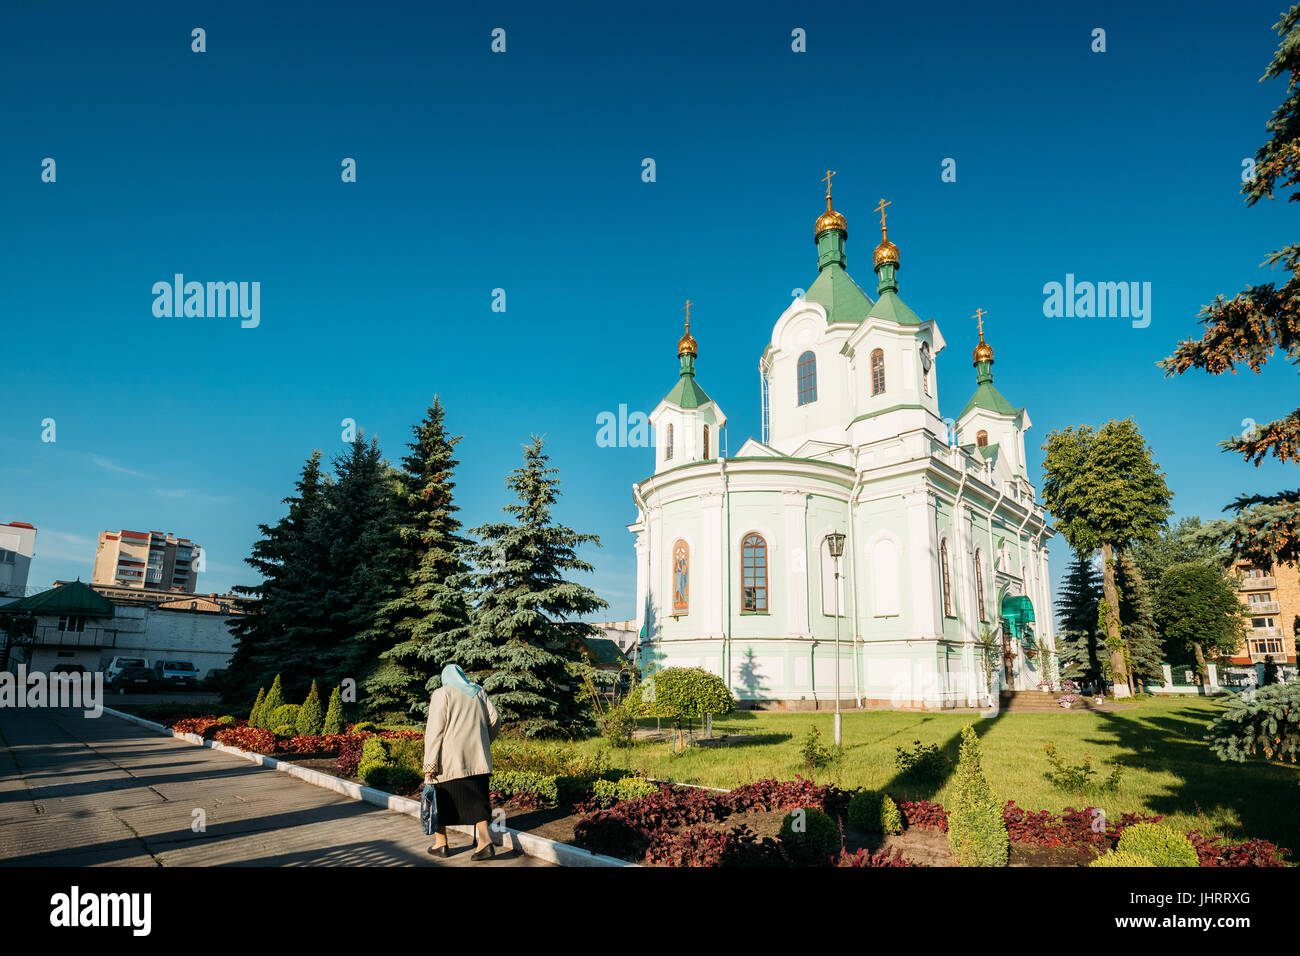 Brest, Belarus. Elderly Woman Walking Near Simeon's Stylites Cathedral Church. - Stock Image